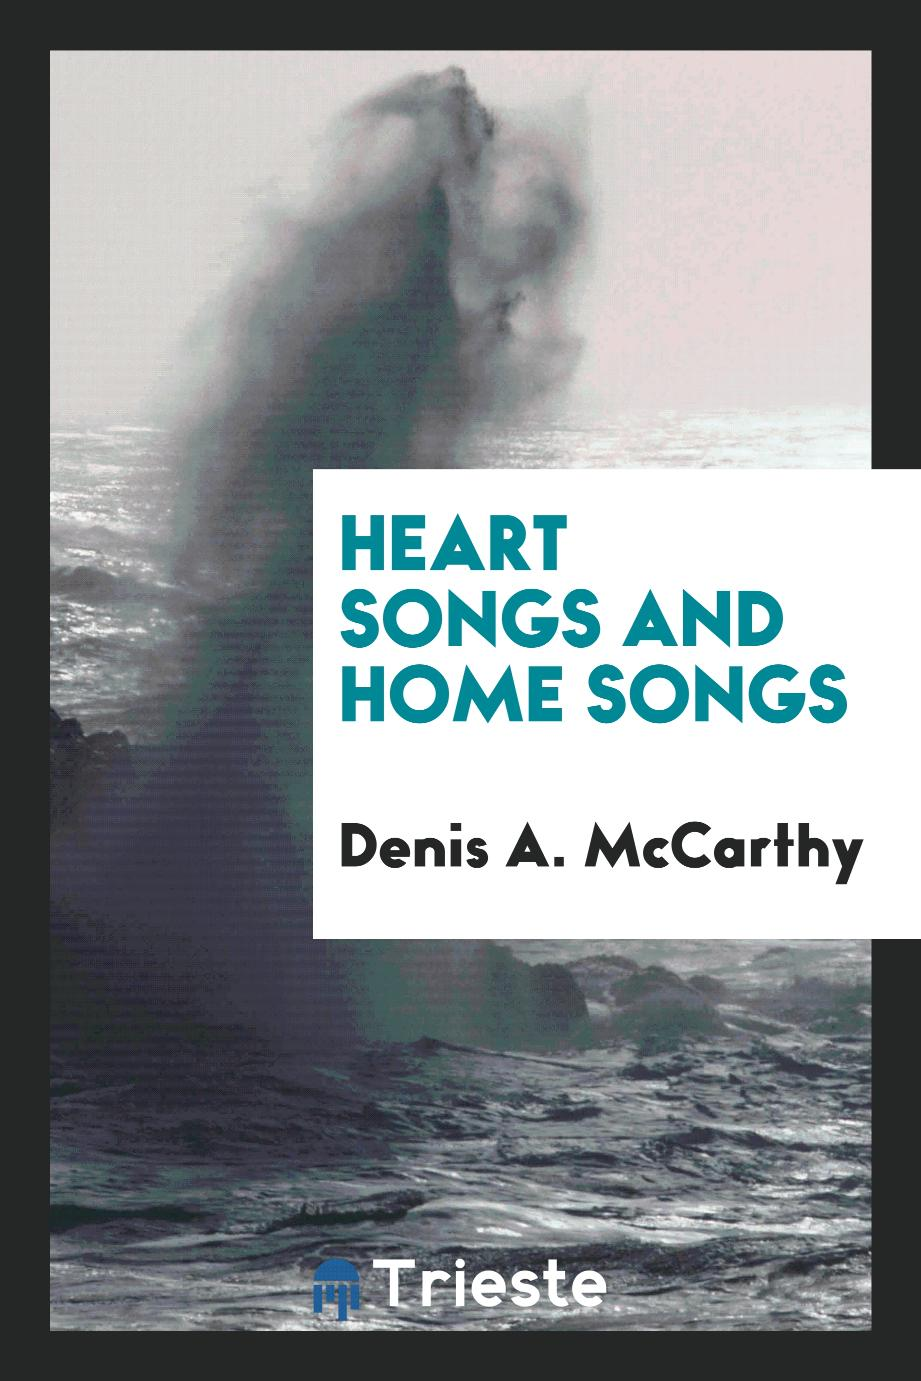 Heart Songs and Home Songs